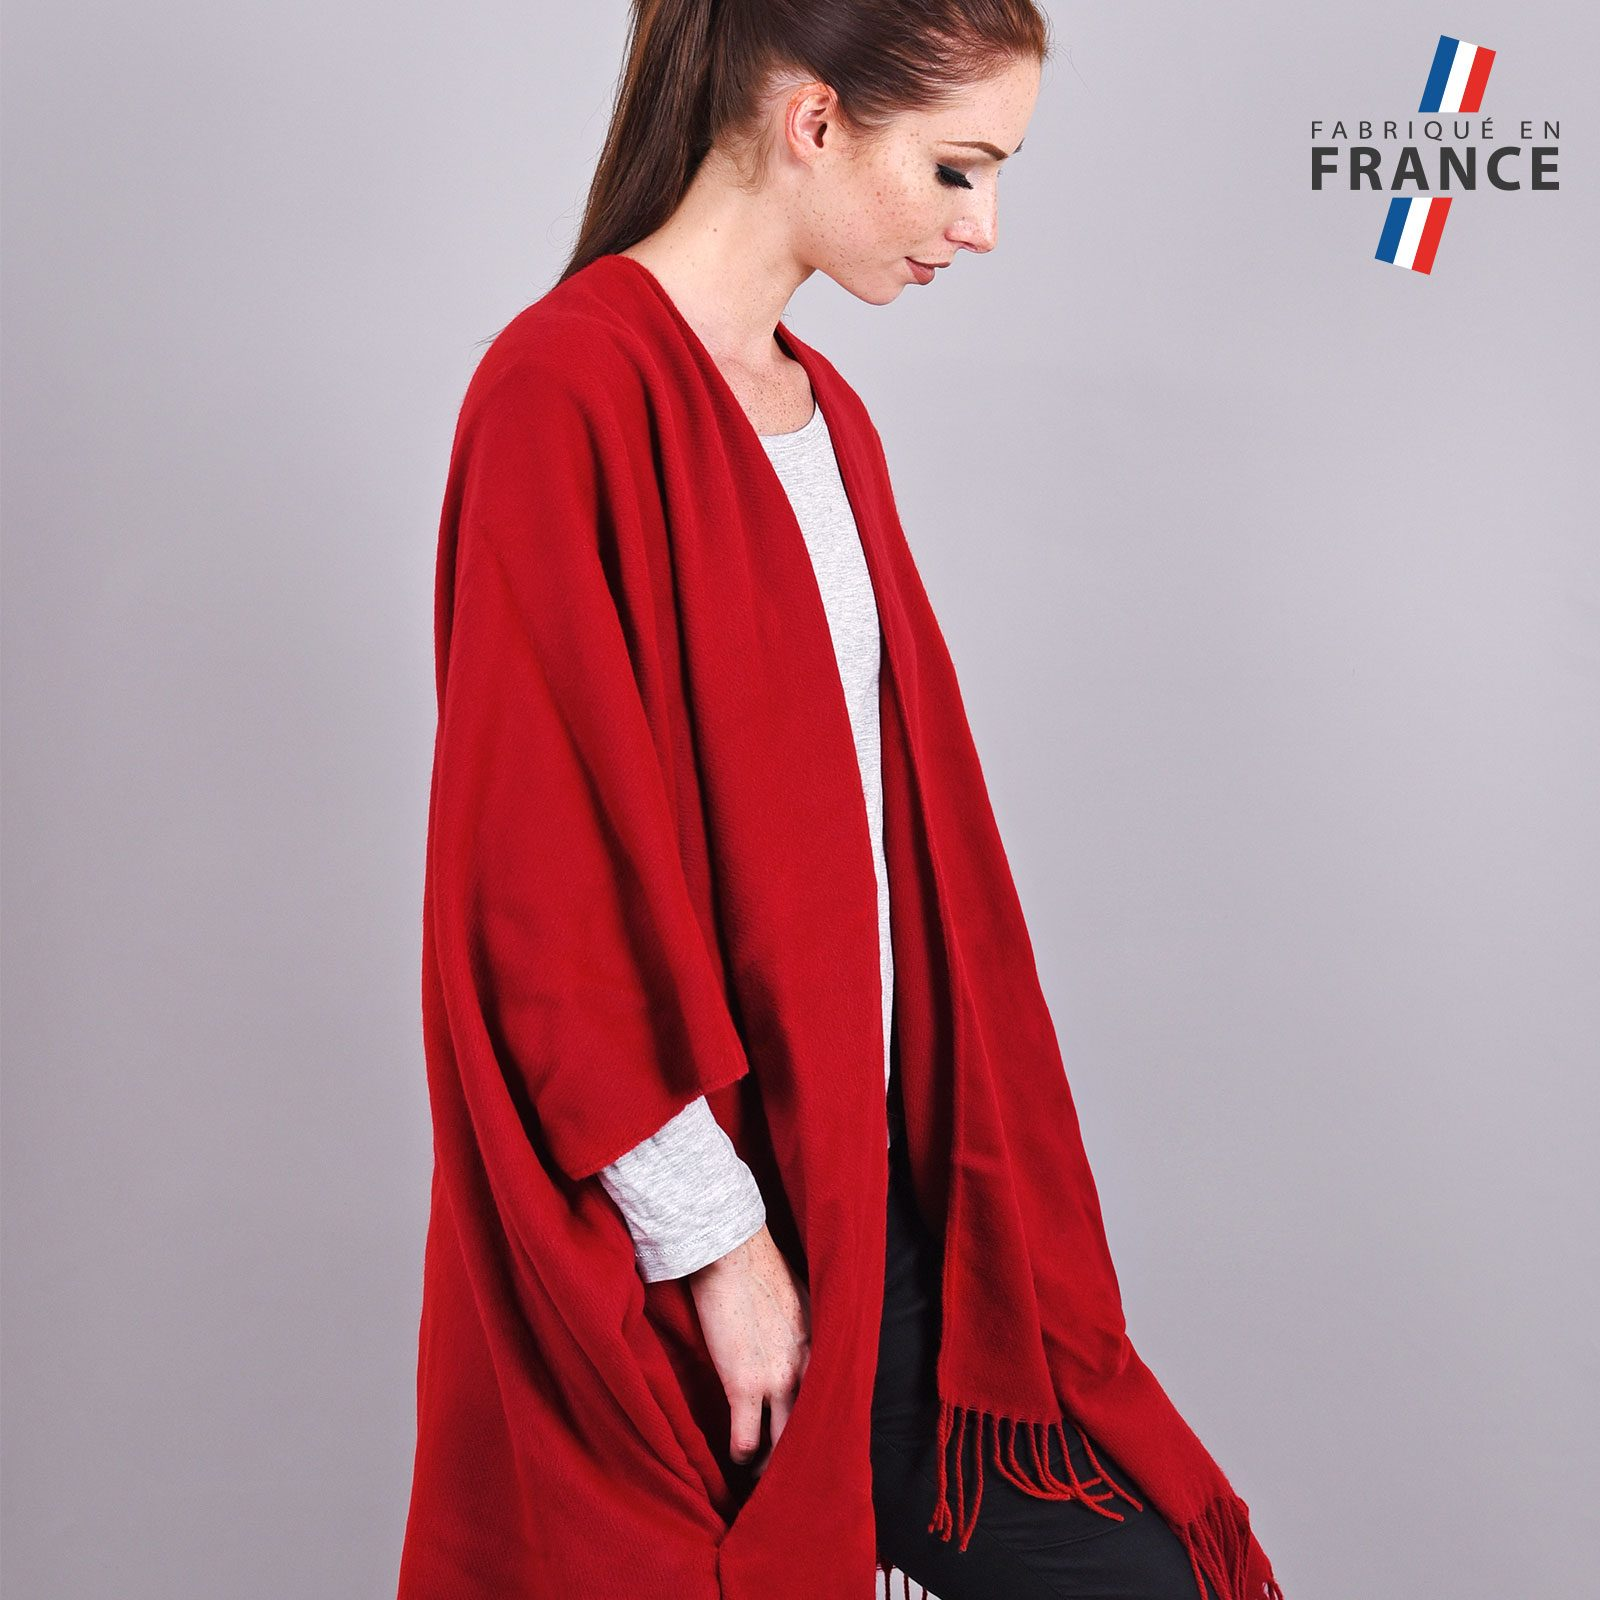 http://lookbook.allee-du-foulard.fr/wp-content/uploads/2018/11/AT-03990-VF16-2-LB_FR-poncho-poches-fabrication-francaise-1600x1600.jpg